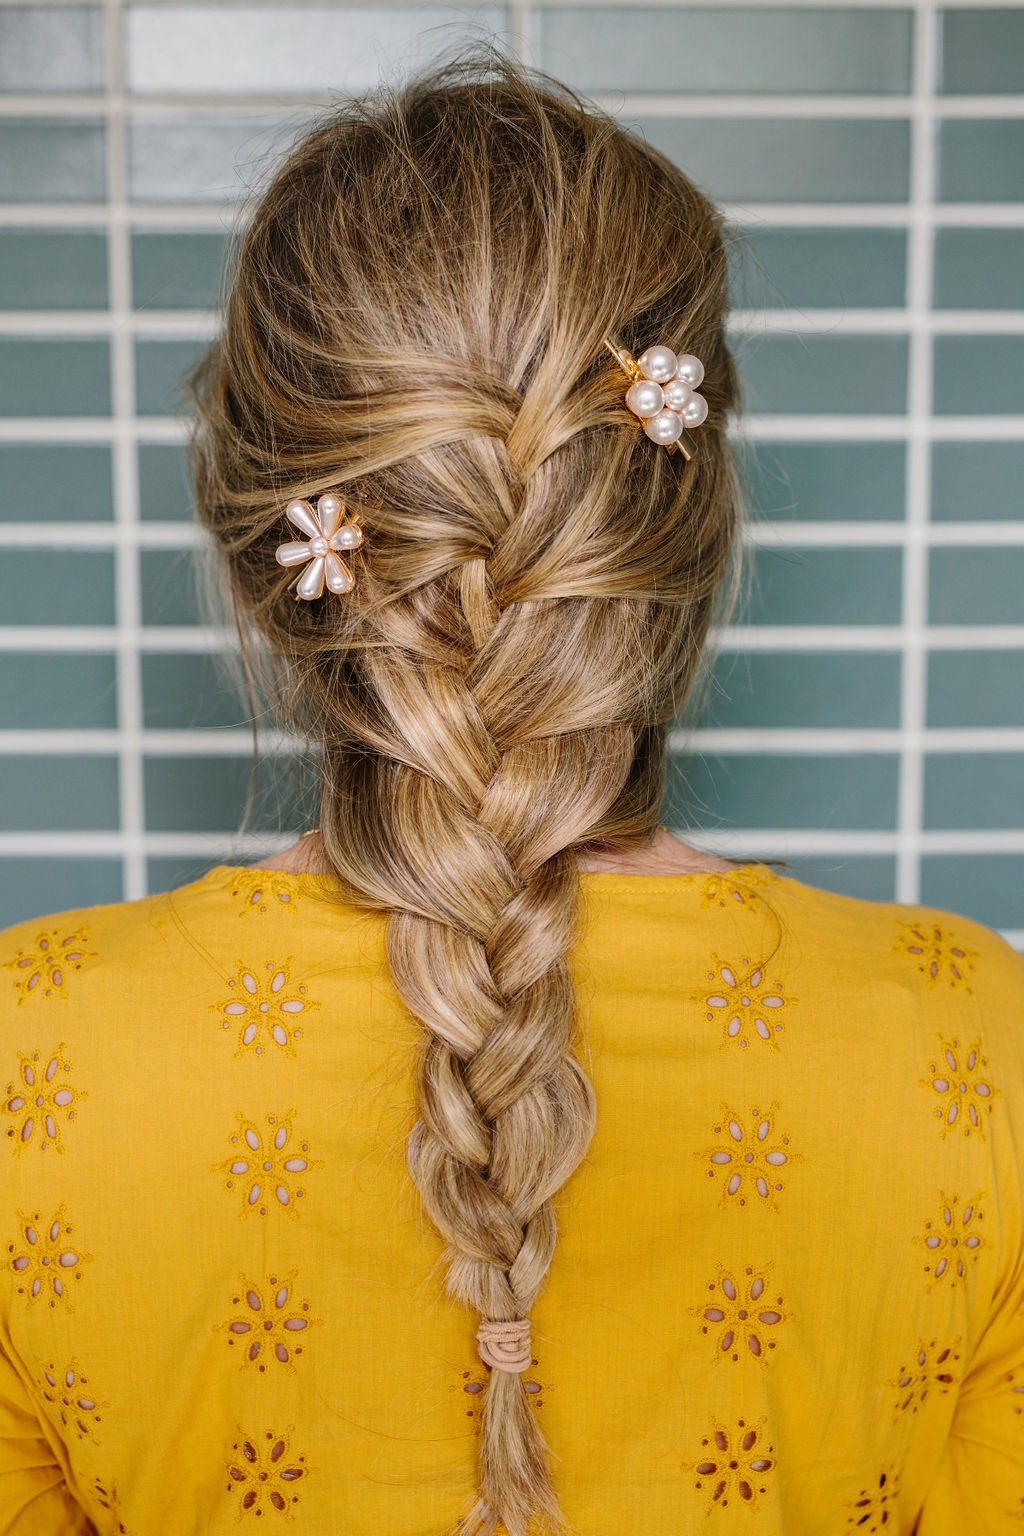 How To French Braid An Easy Step By Step Tutorial For A Relaxed